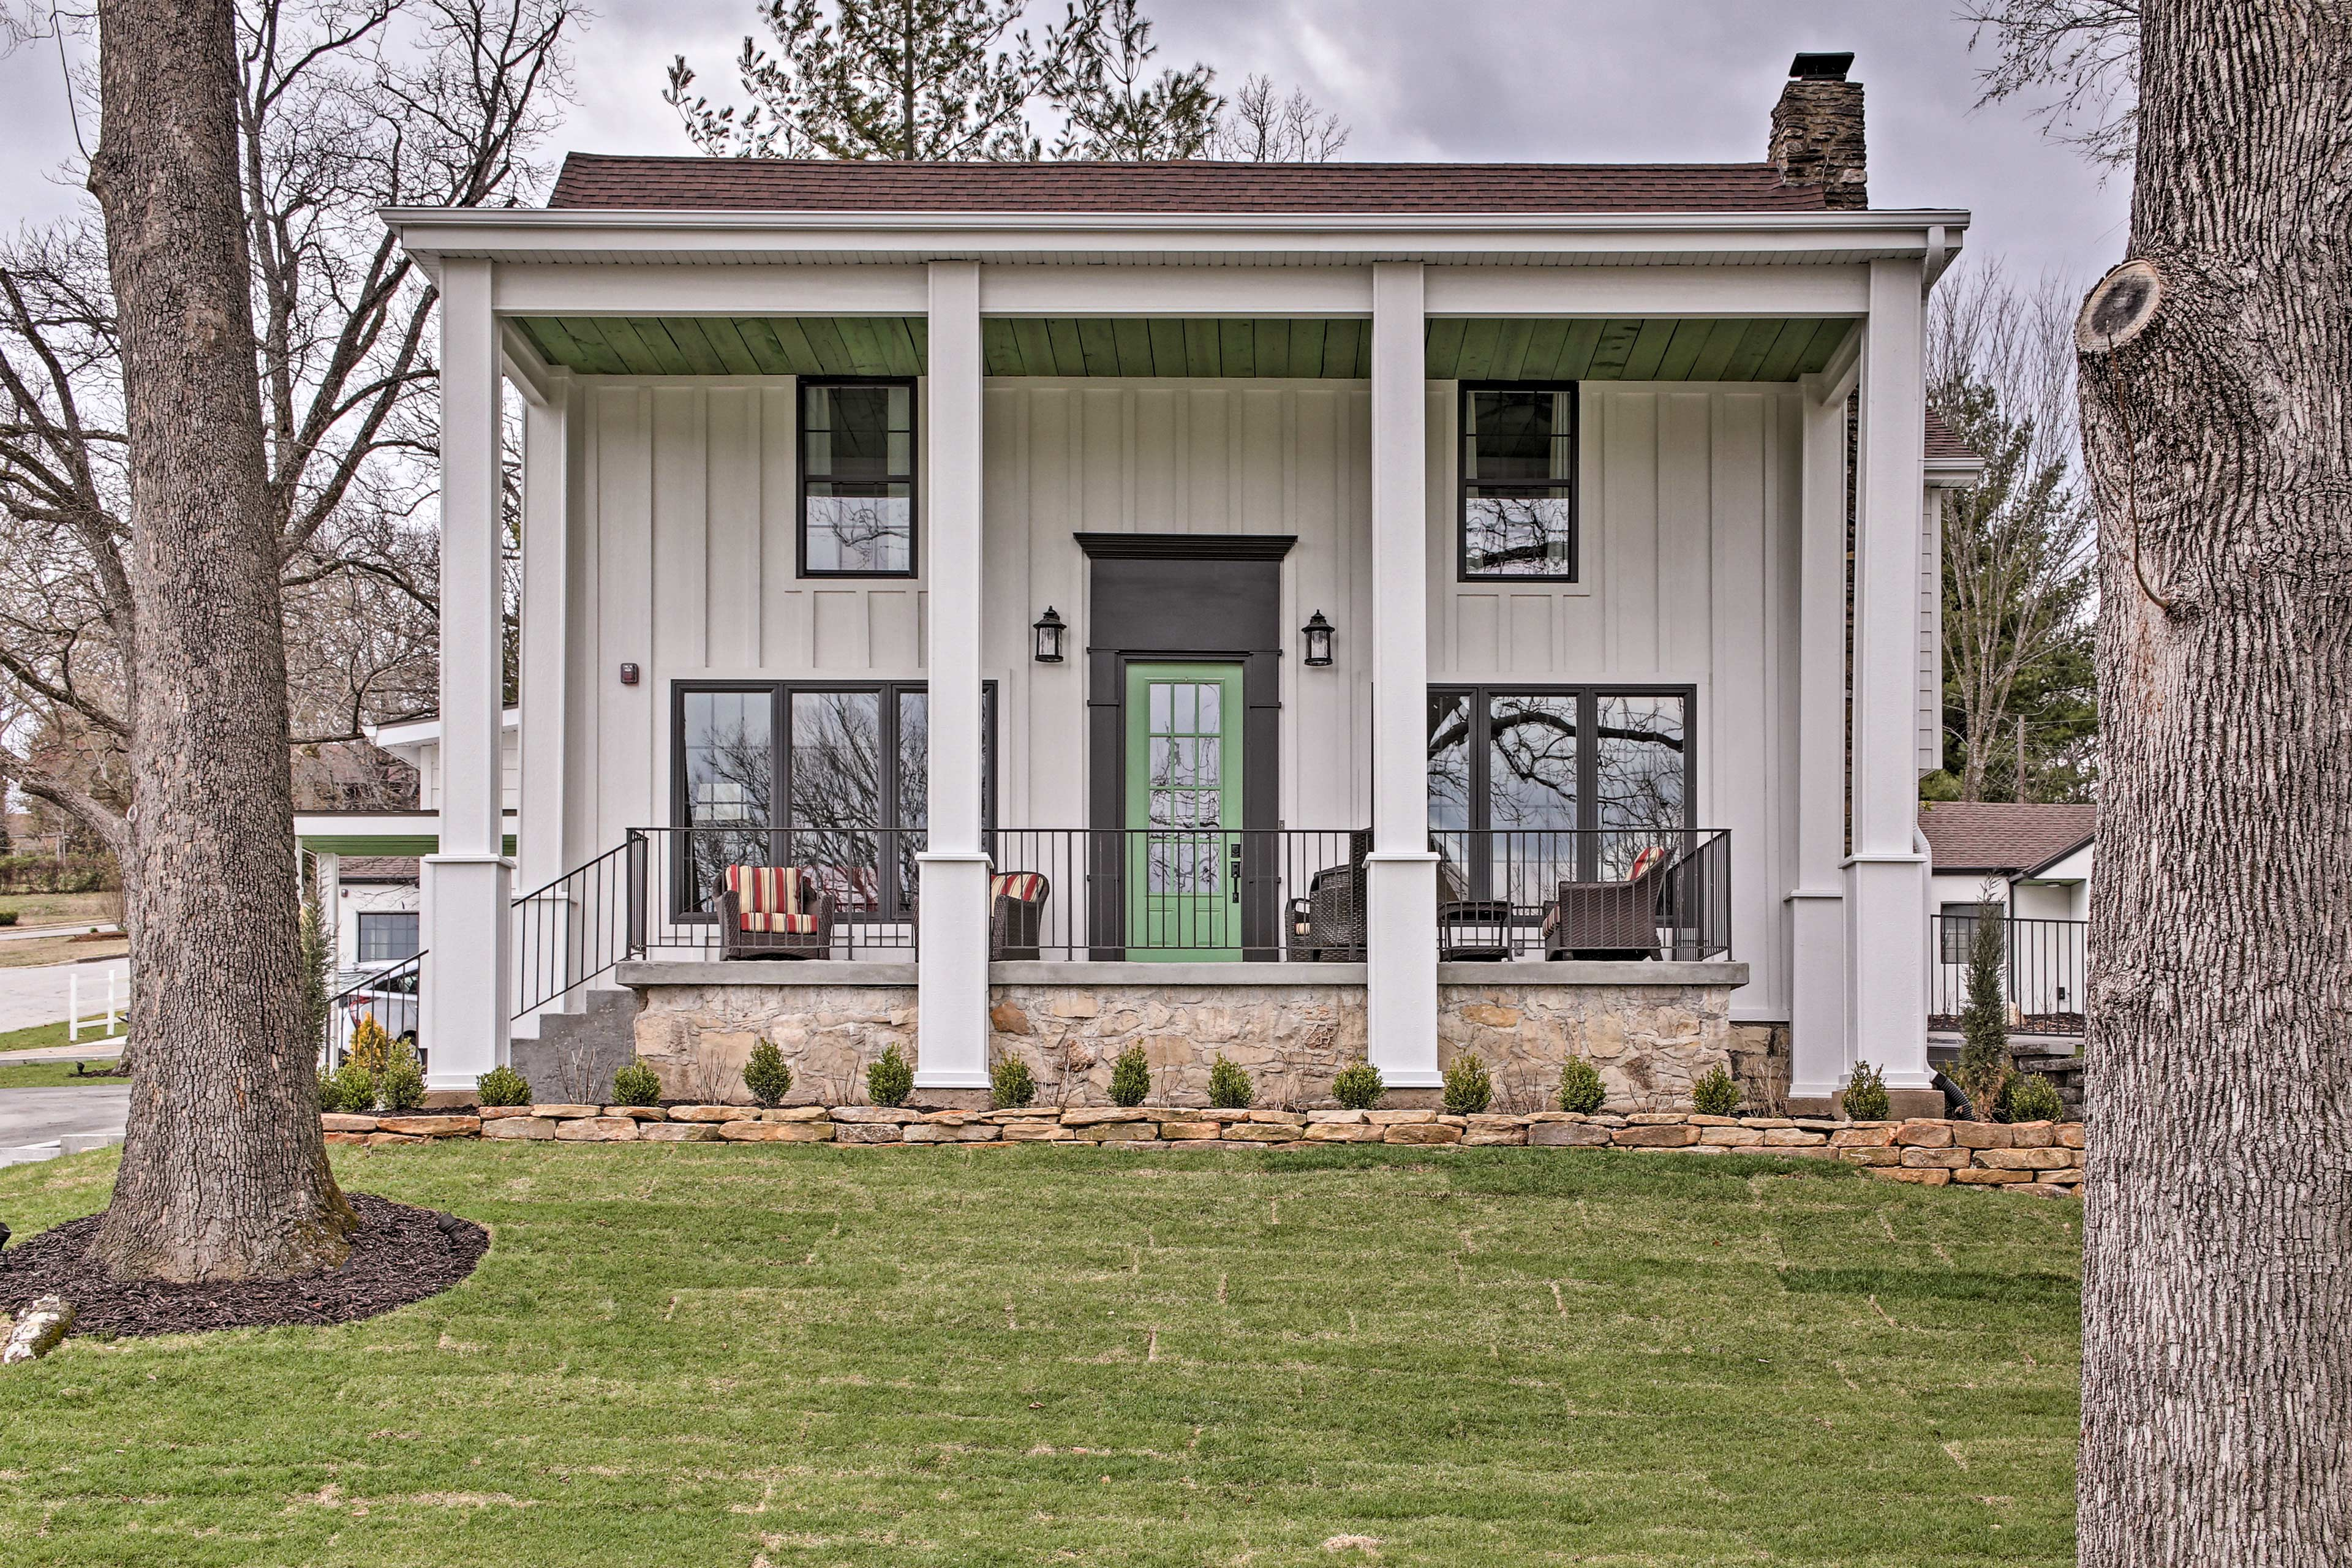 Explore Branson from this centrally located  vacation rental house!